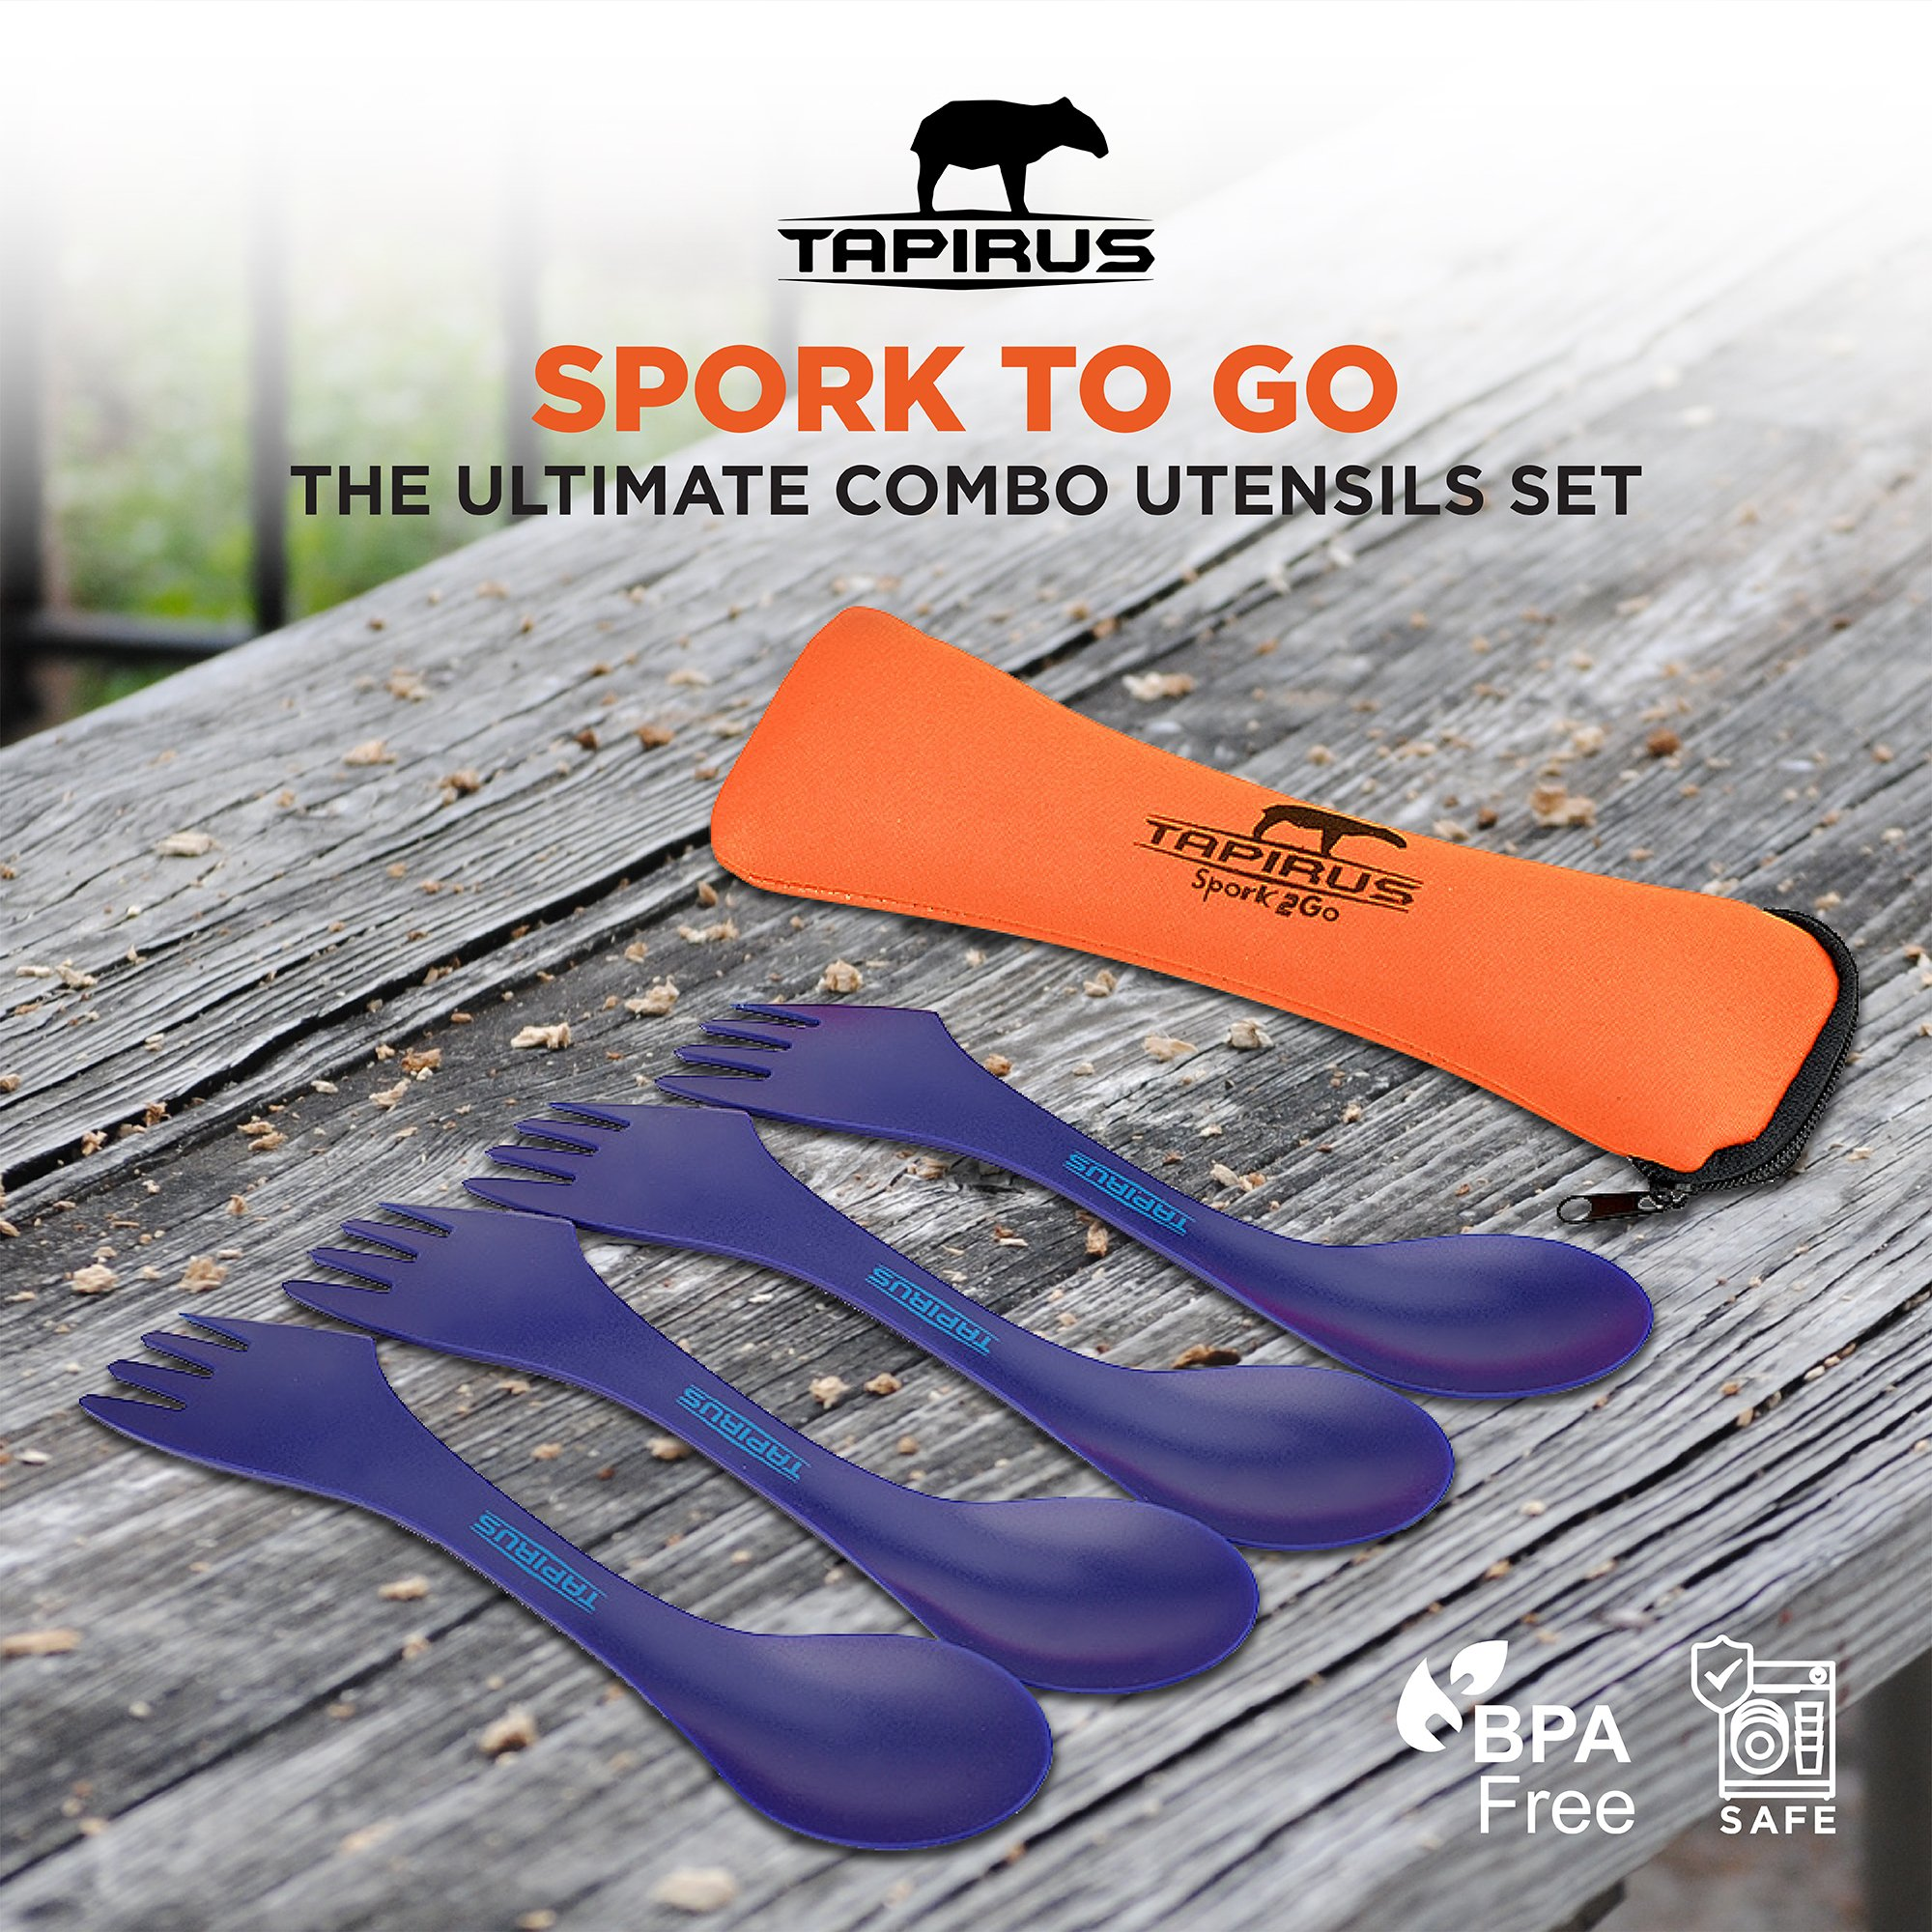 Tapirus 4 Blue Spork To Go Set | Durable & BPA Free Tritan Sporks | Spoon, Fork & Knife Combo Utensils Flatware | Mess Kit For Camping, Fishing, Hunting & Outdoor Activities | Comes In A Carrying Case by Tapirus (Image #6)